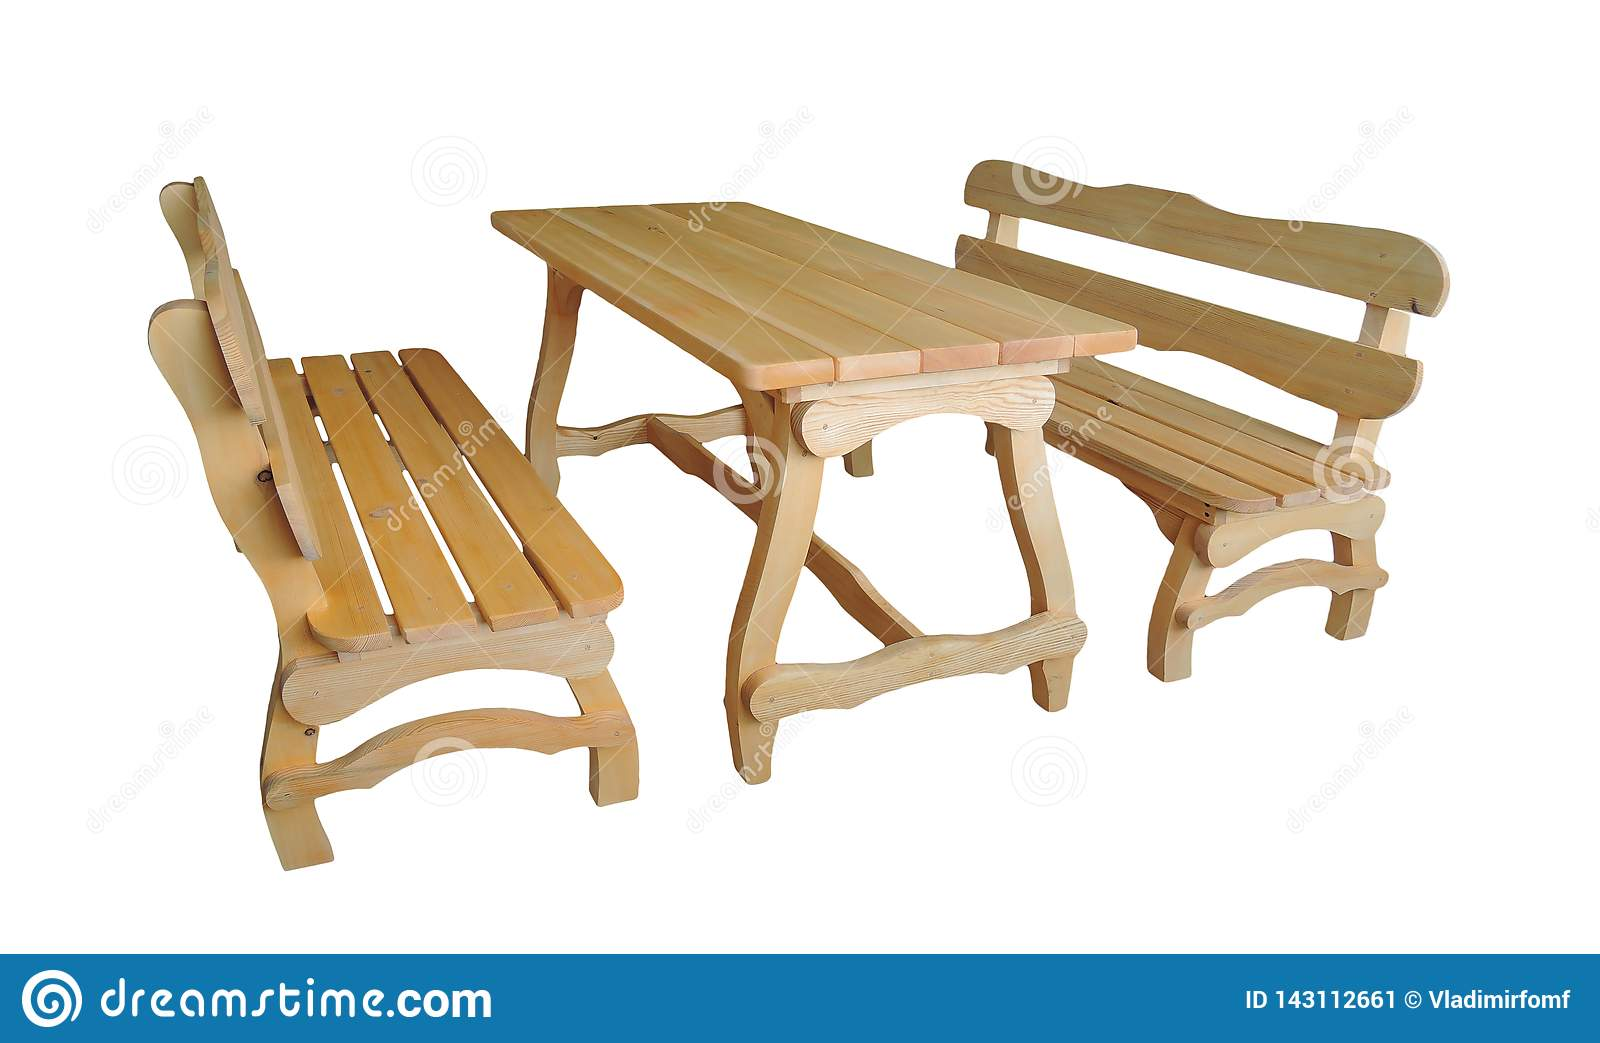 Wooden benches and table on white background. Garden furniture